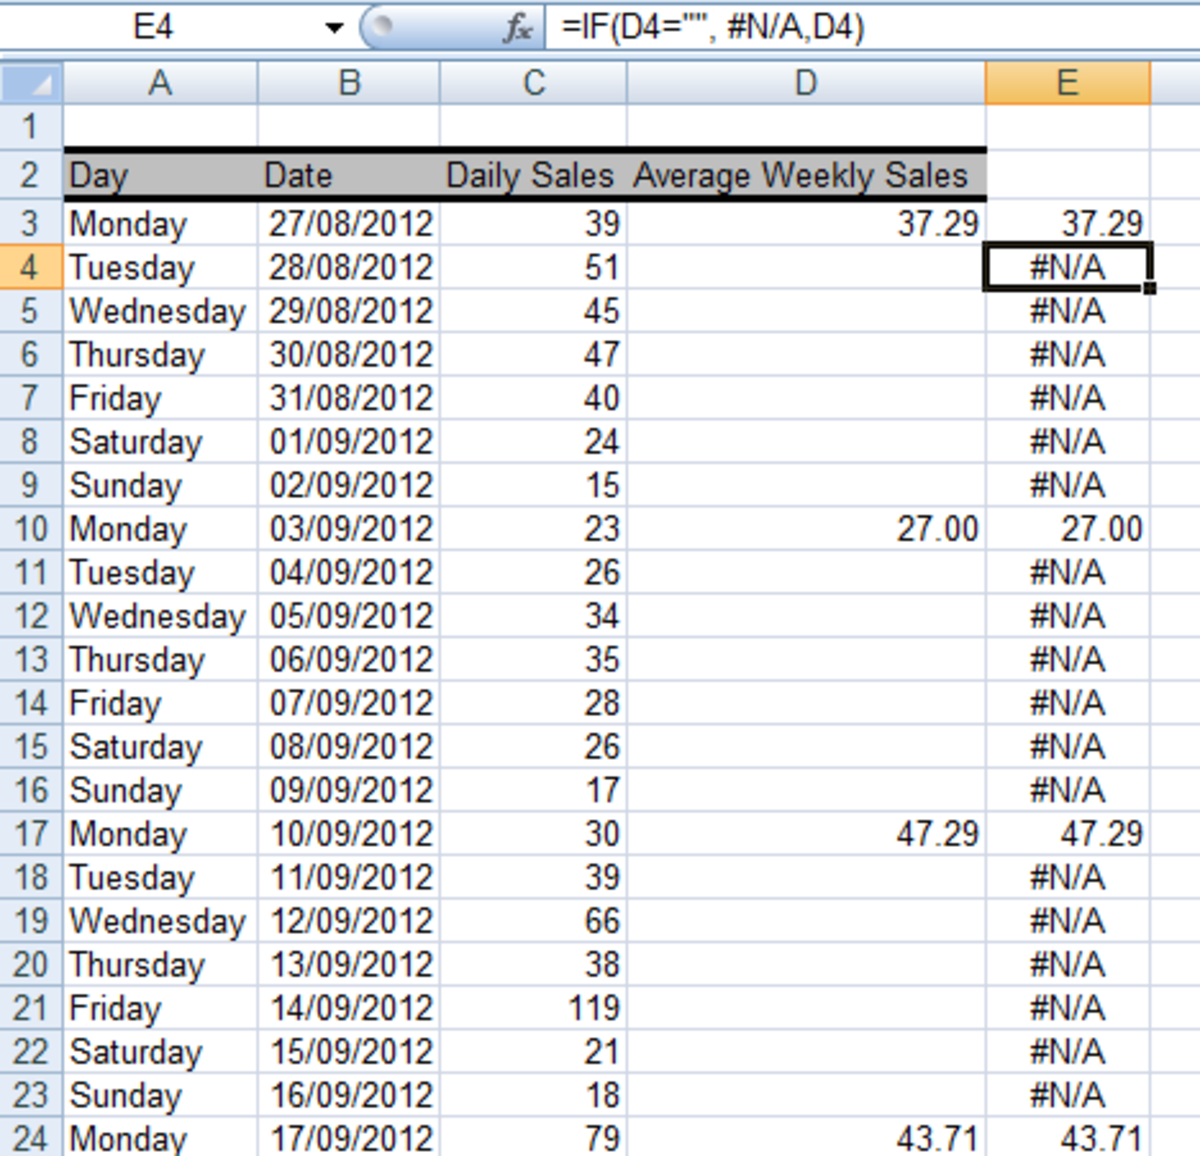 Ediblewildsus  Pretty How To Get Excel  And  To Ignore Empty Cells In A Chart Or  With Lovable Using The If Function In A Formula To Convert Empty Cells To Na With Cute Convert Dates In Excel Also Excel Beginners In Addition Excel Vba Range Select And Deduping In Excel As Well As Excel Waterfall Template Additionally Formula For Addition In Excel From Turbofuturecom With Ediblewildsus  Lovable How To Get Excel  And  To Ignore Empty Cells In A Chart Or  With Cute Using The If Function In A Formula To Convert Empty Cells To Na And Pretty Convert Dates In Excel Also Excel Beginners In Addition Excel Vba Range Select From Turbofuturecom